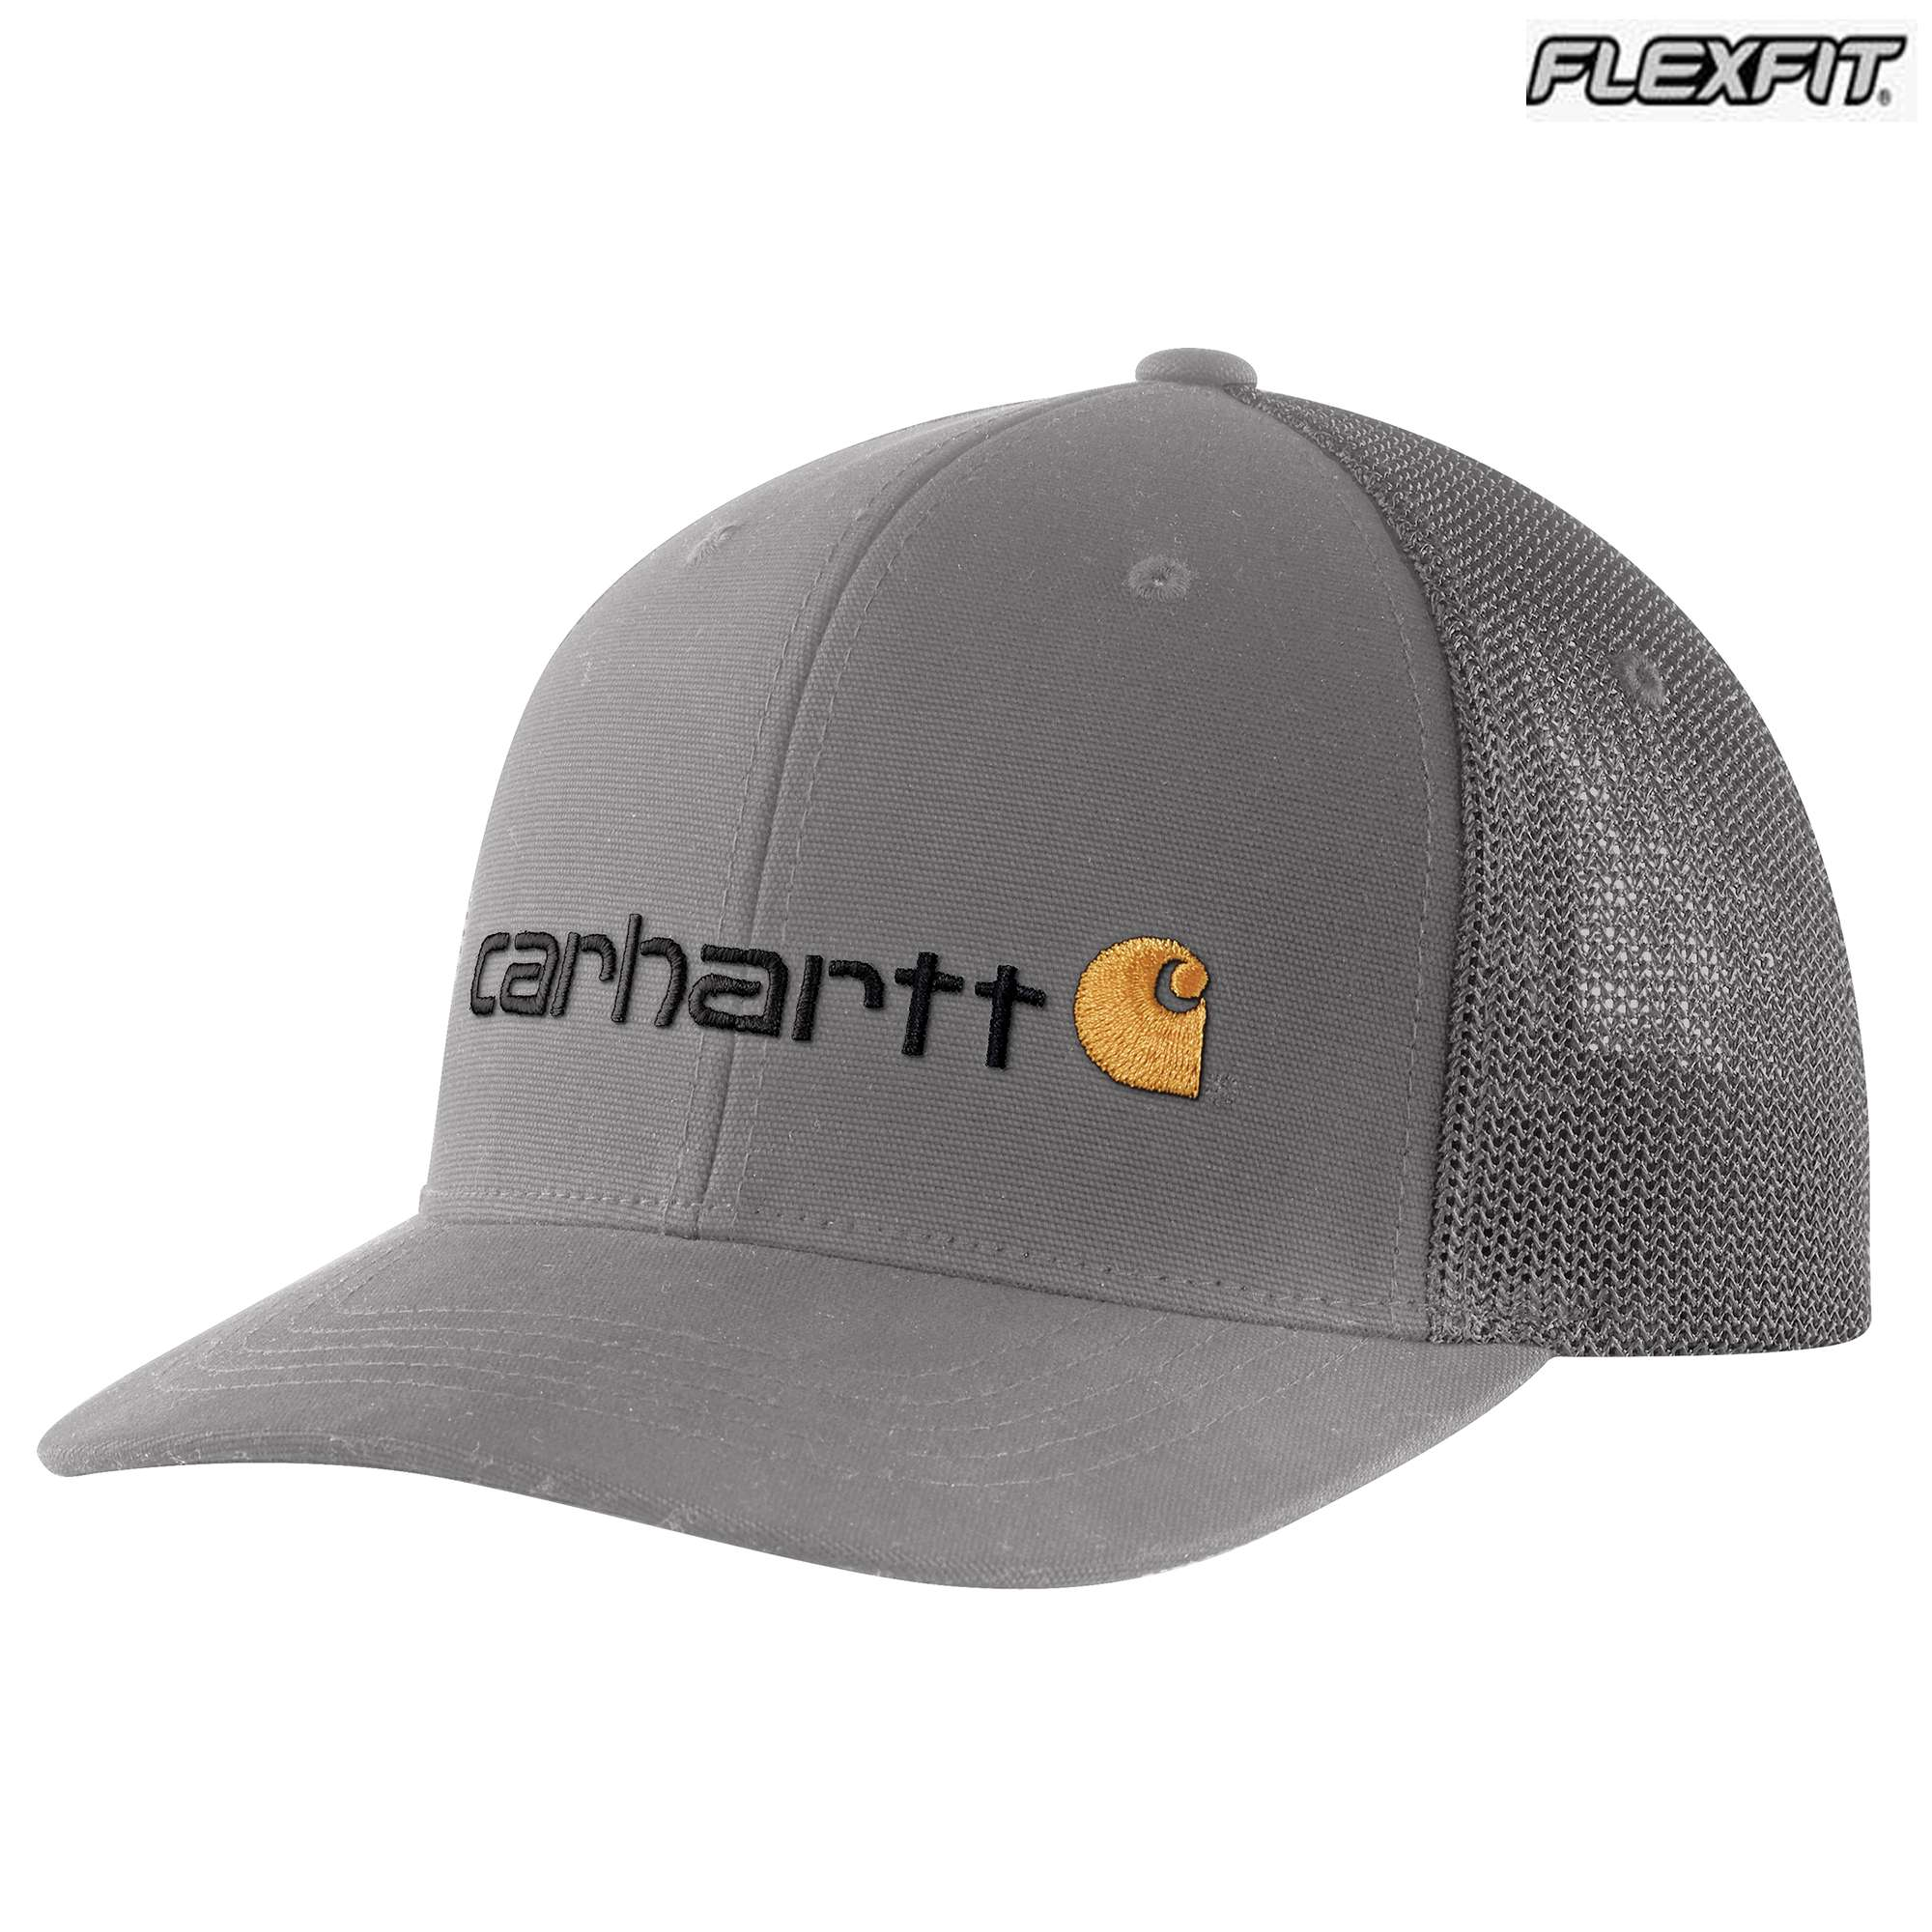 Carhartt Rugged Flex Canvas Mesh-Back Fitted Logo Graphic Cap